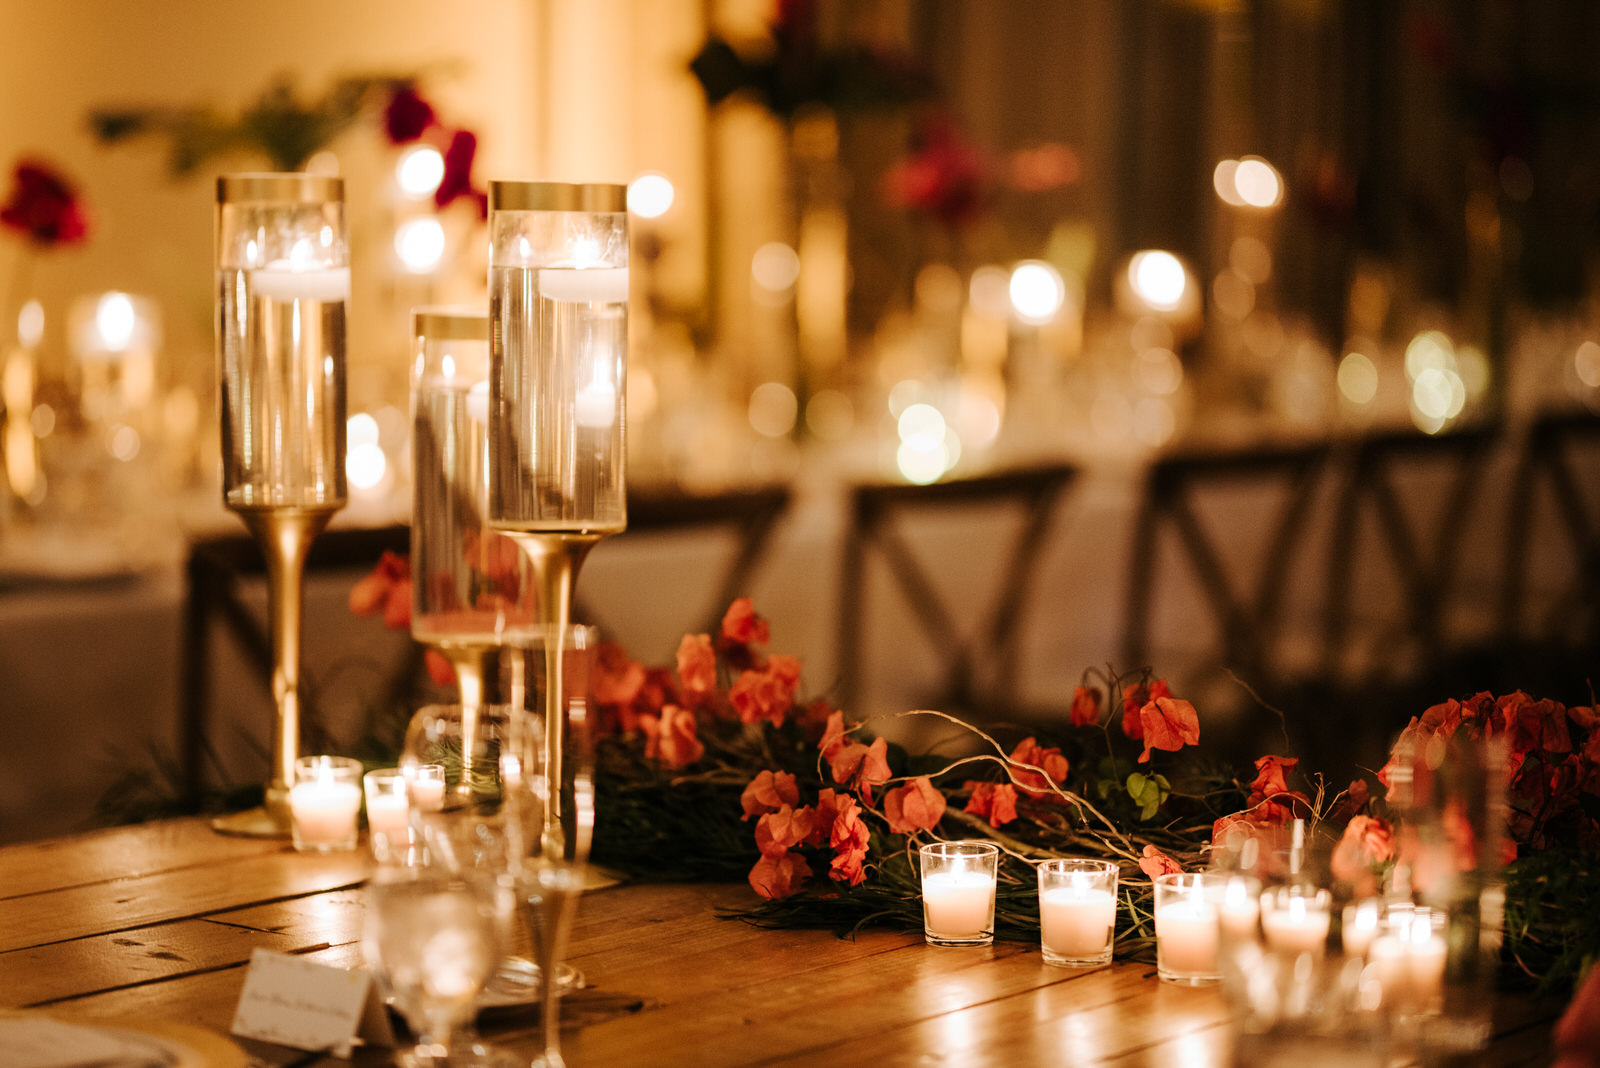 Close up photograph of decorations and candles on main table in the room